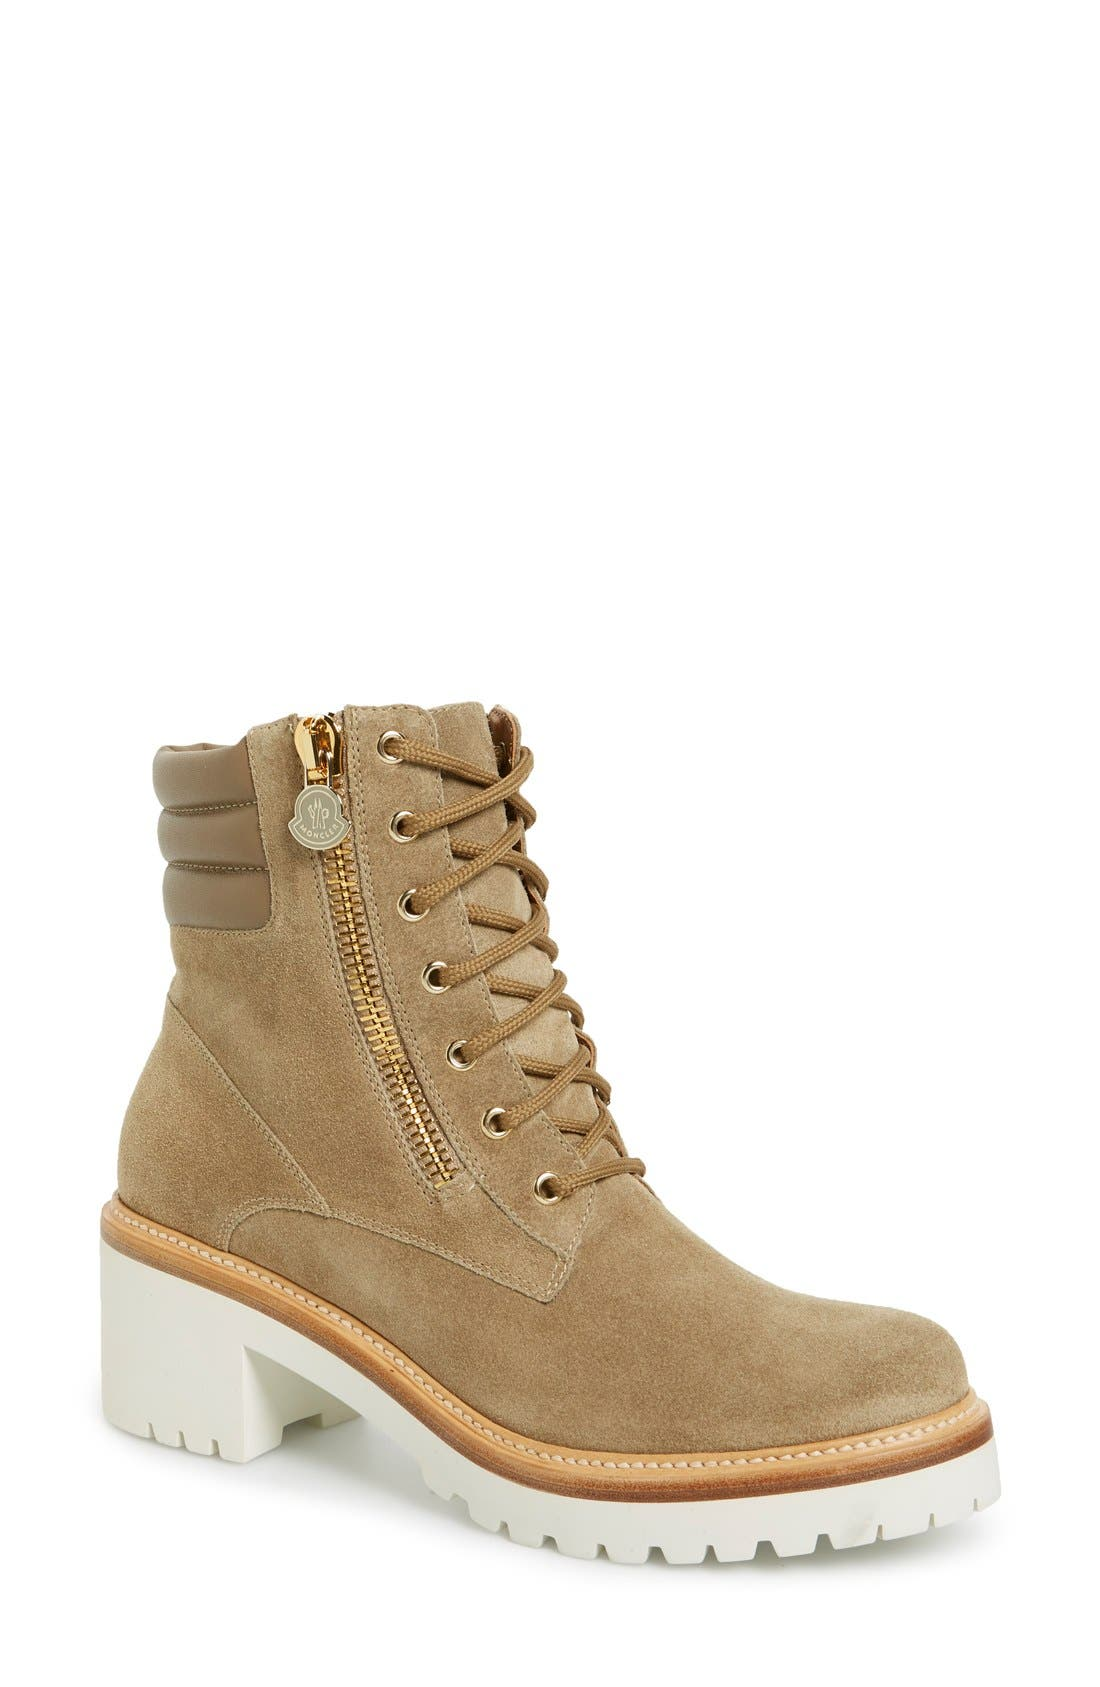 'Viviane' Hiker Boot,                         Main,                         color, Brown Suede Calfskin